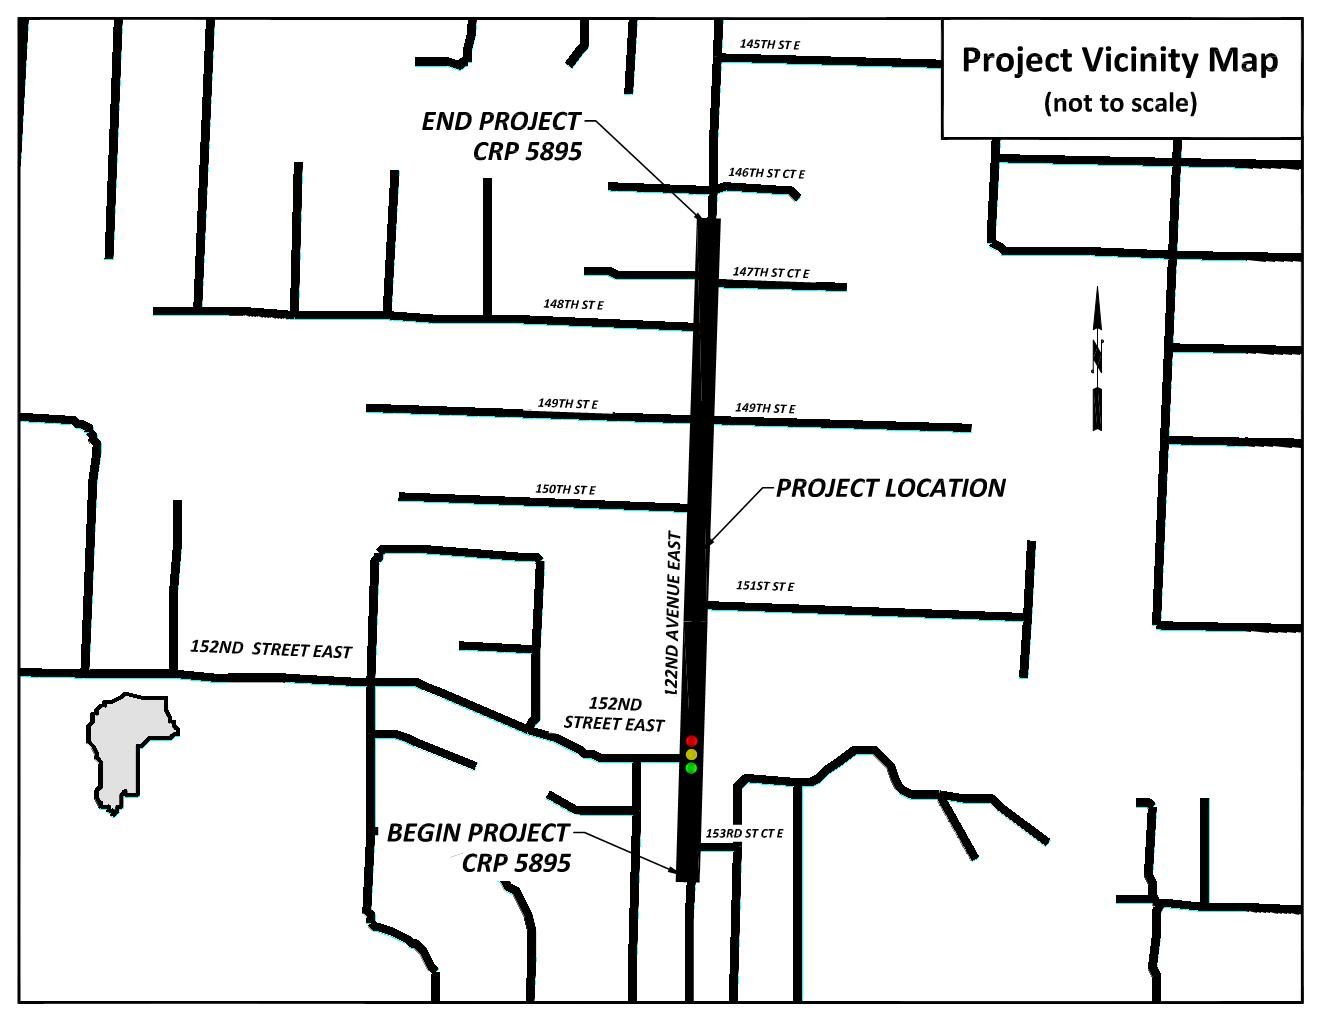 Image of the project vicinity map.